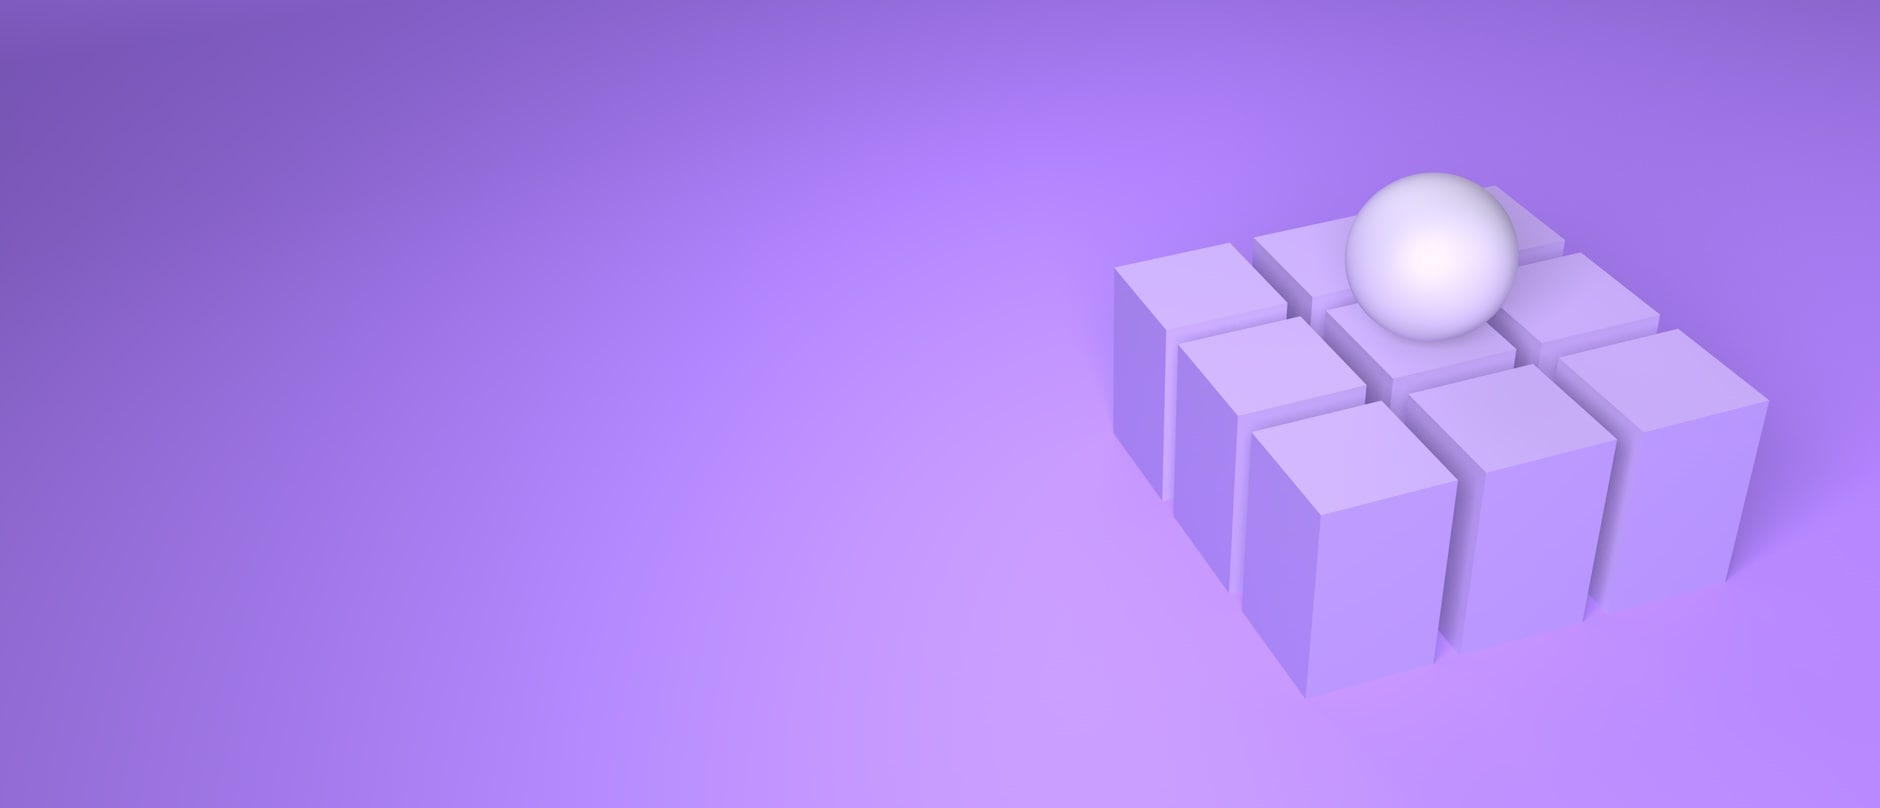 white sphare on purple cubes